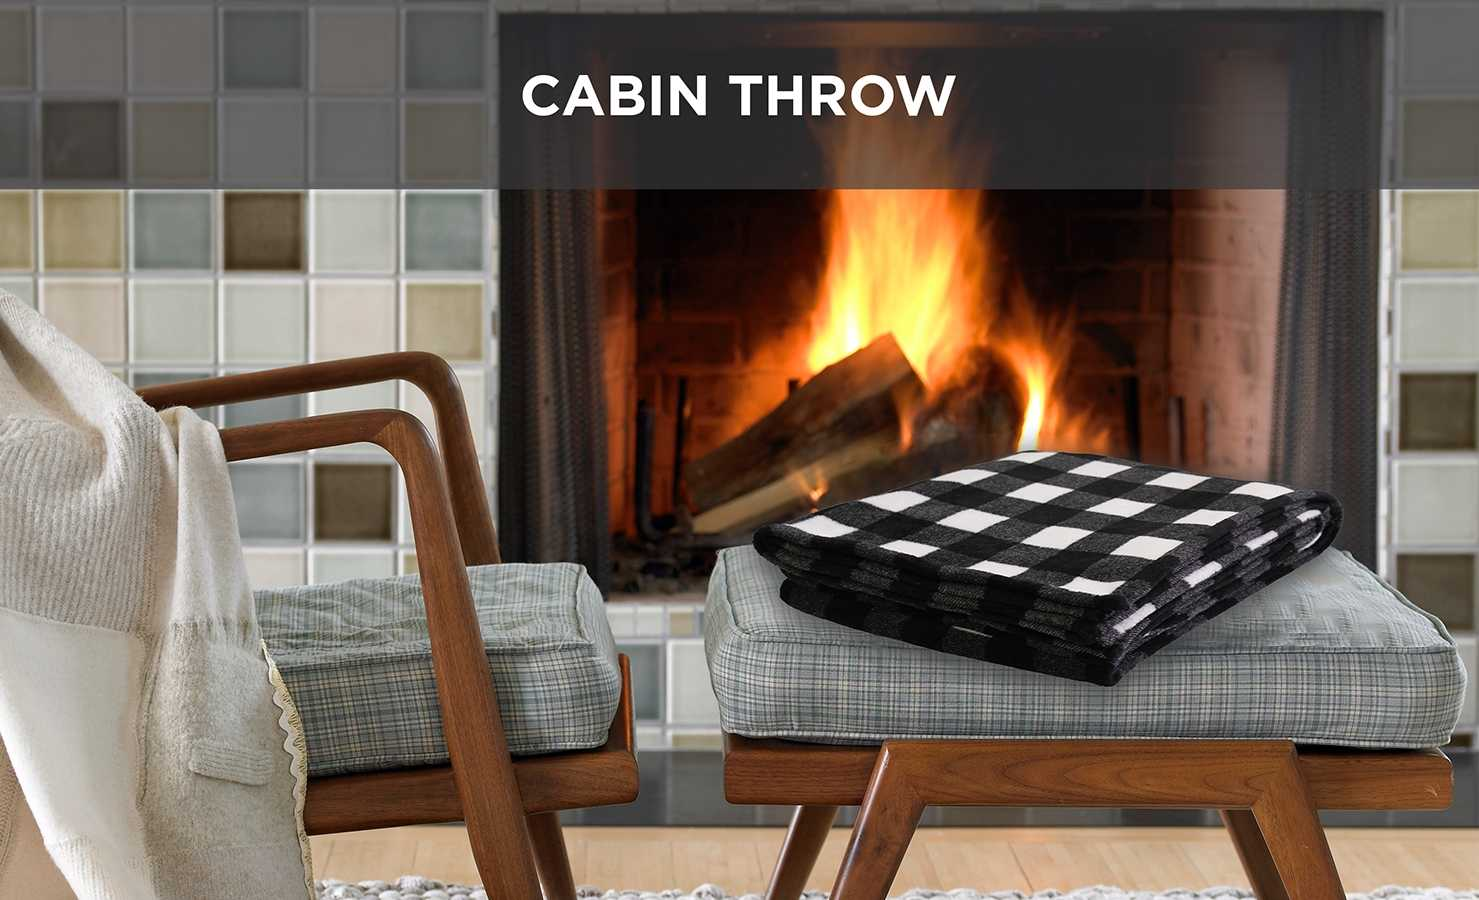 Cabin Throw AIM